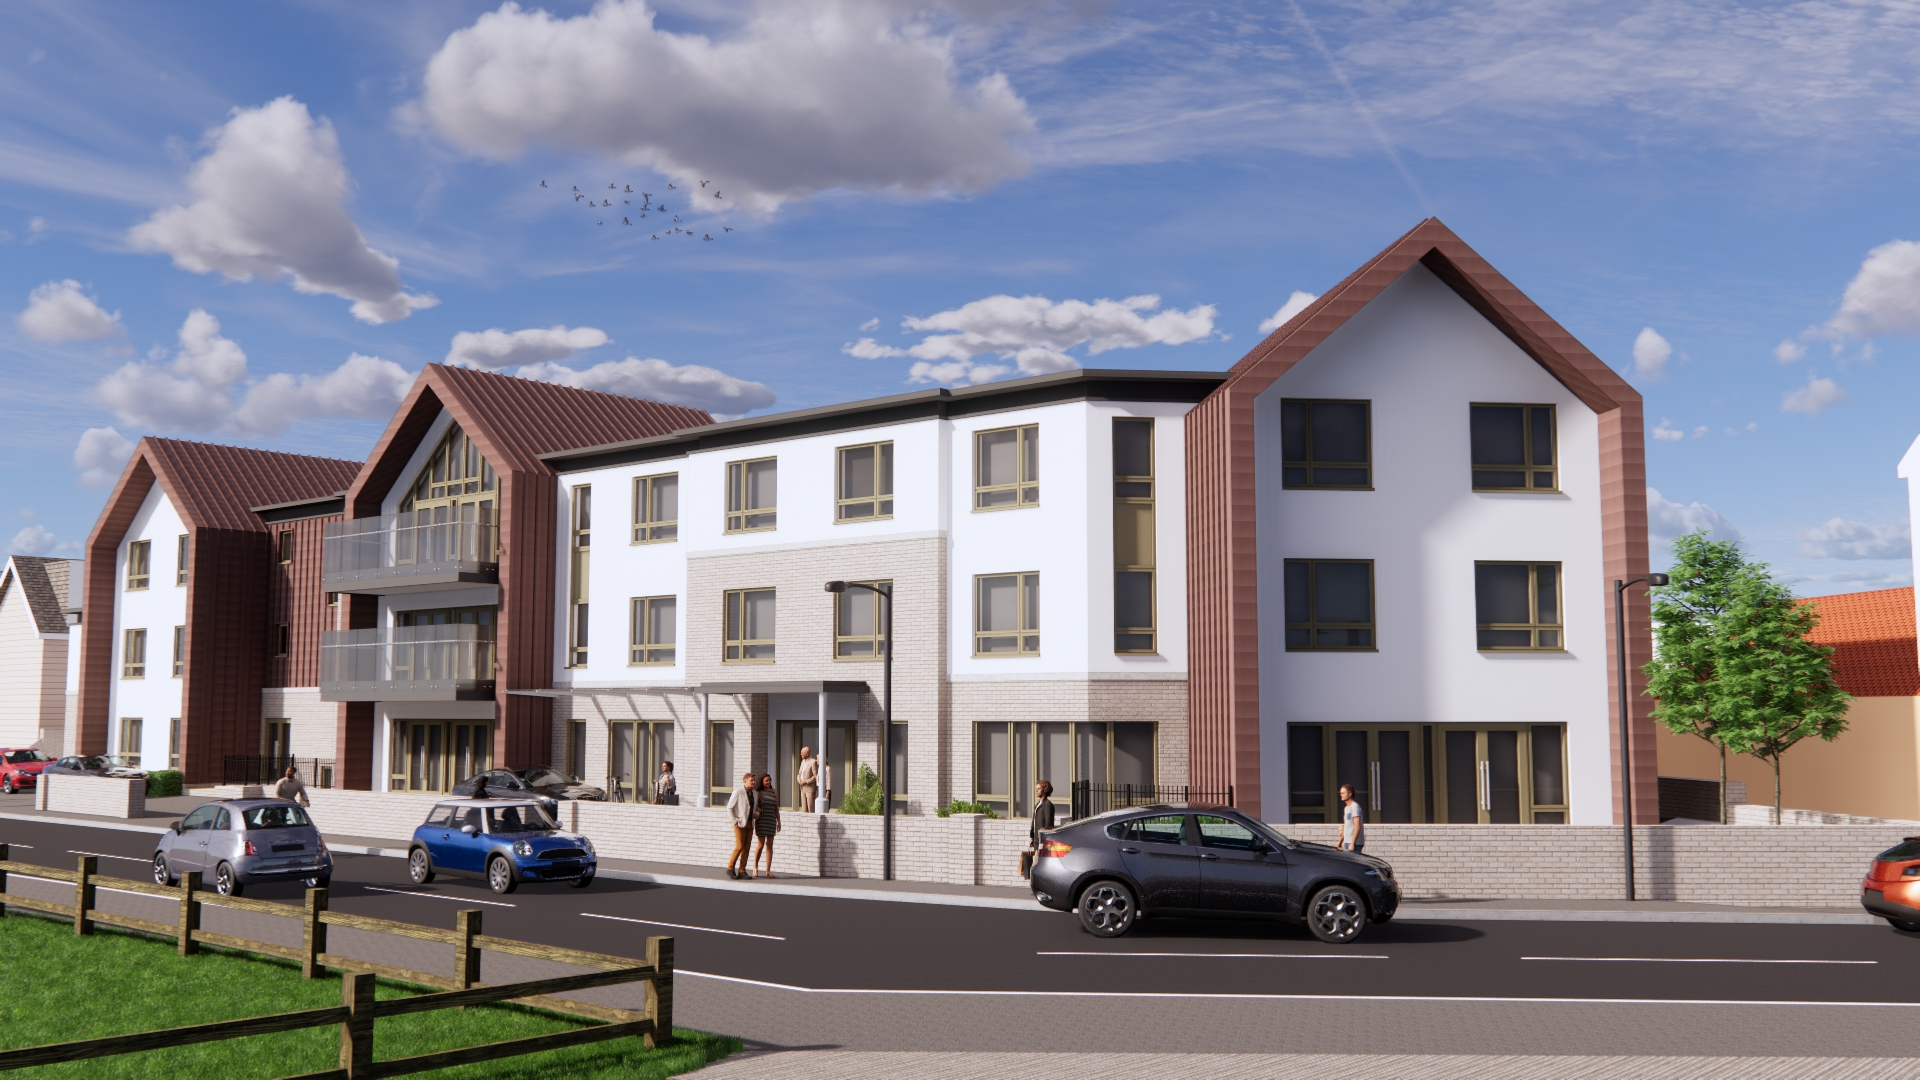 A new 66-bedded care home in Lancing